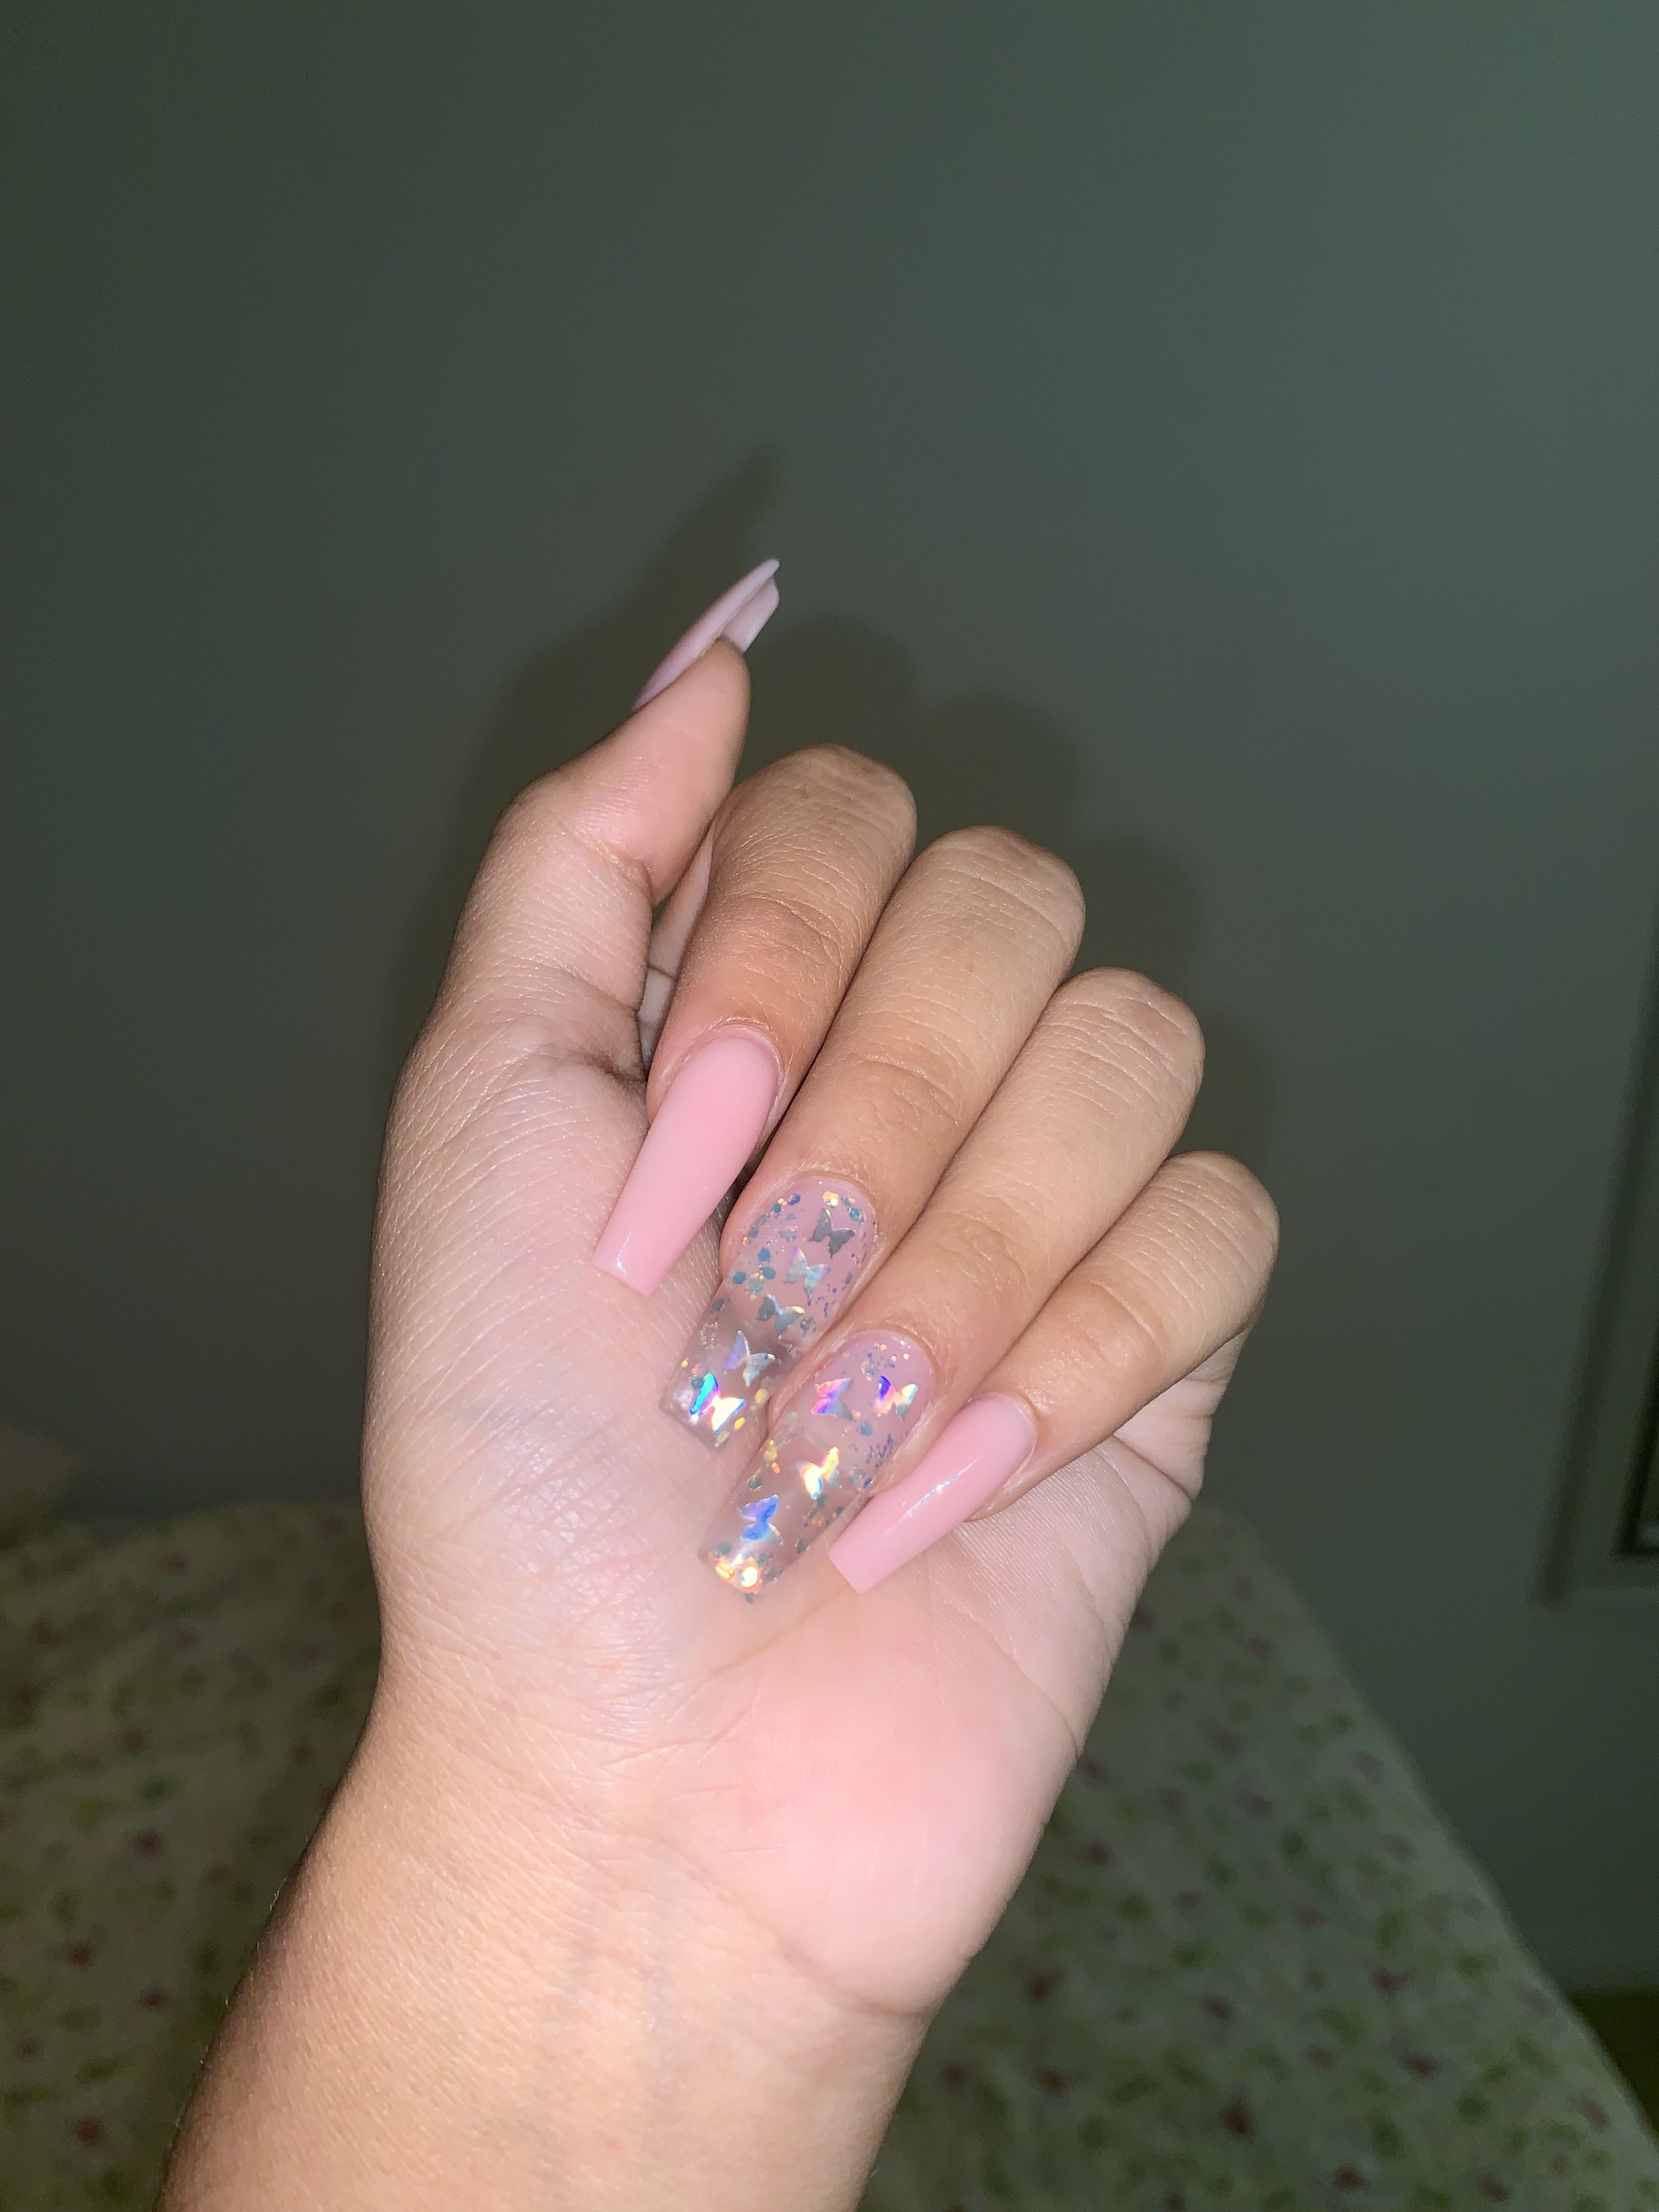 Butterfly Nails Pink Nails Coffin Nails Designs Pink Acrylic Nails